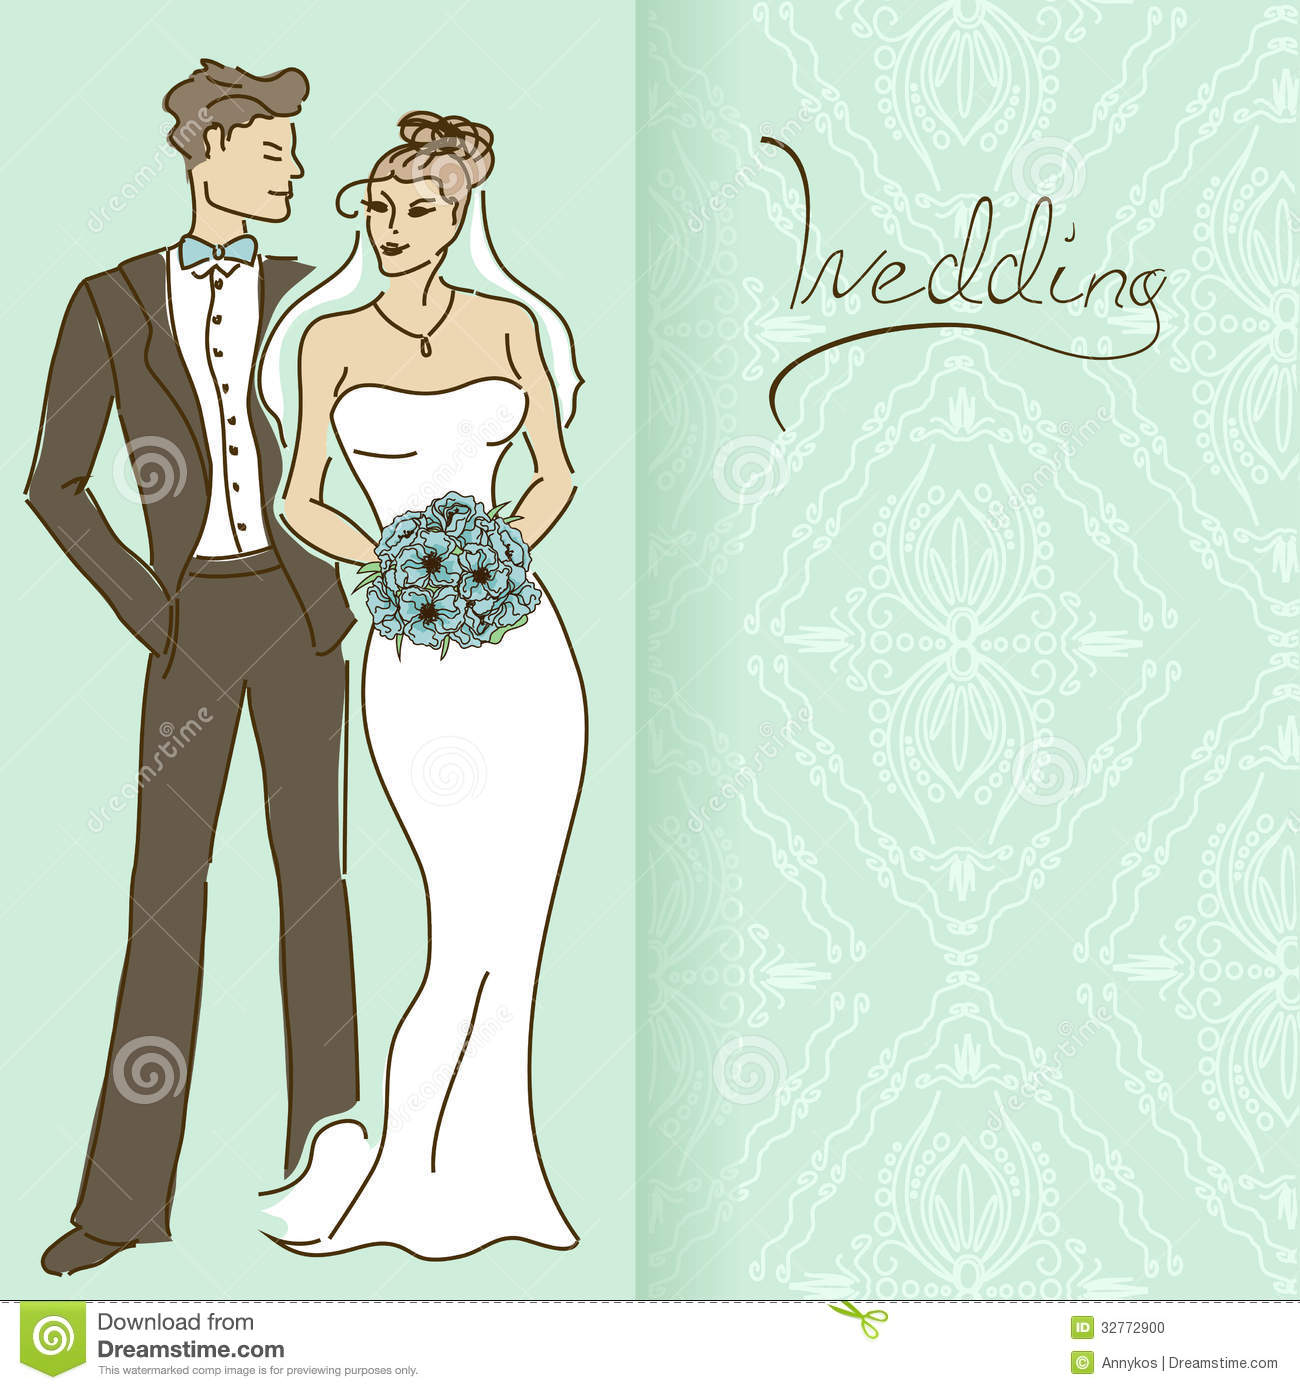 Wedding Invitation Or Card With Couple Stock Photo - Image: 32772900